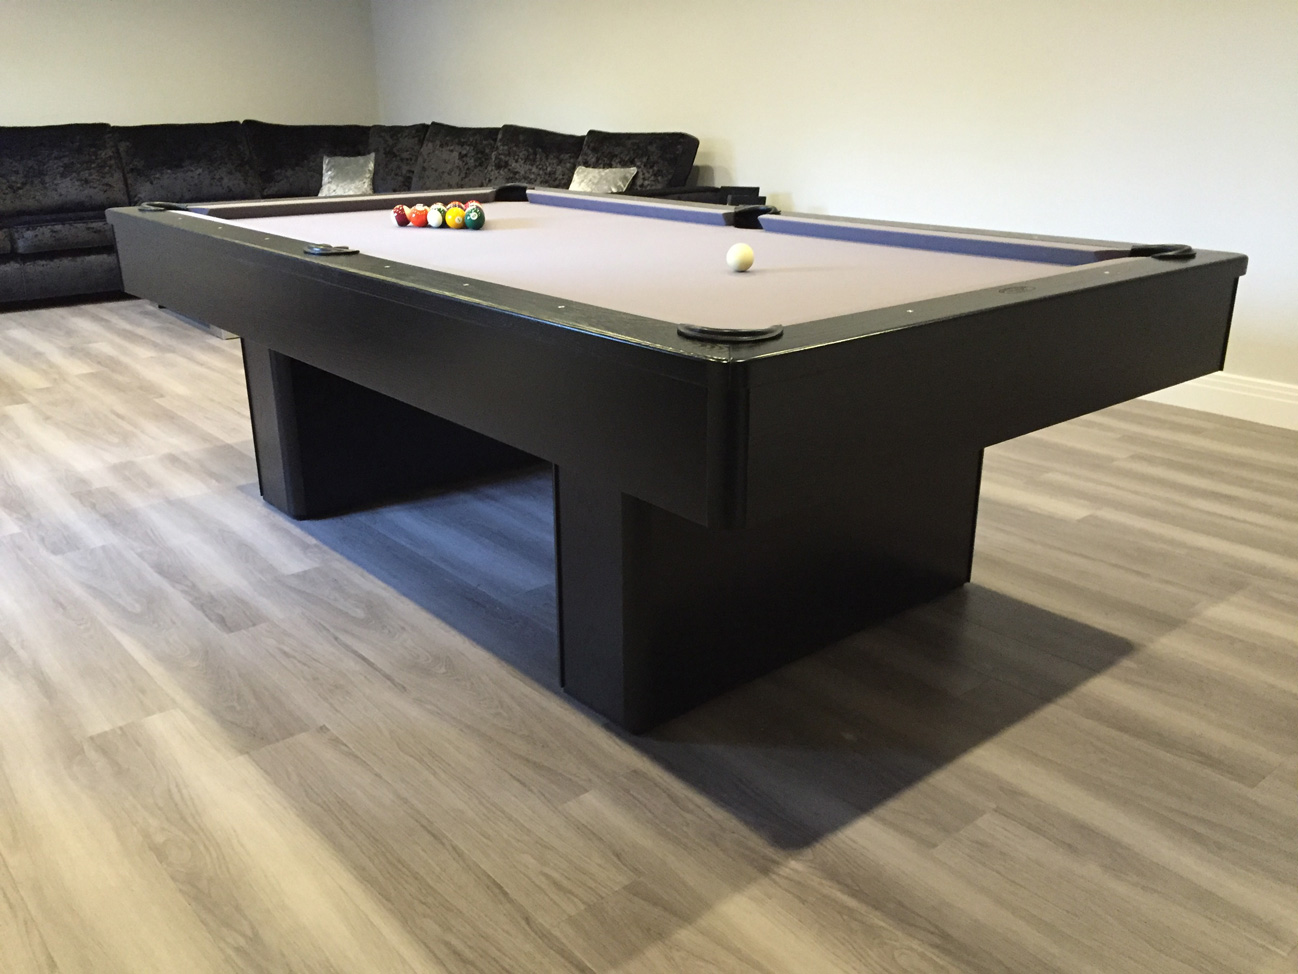 Modern Bespoke American Pool Tables Olhausen - Olhausen madison pool table